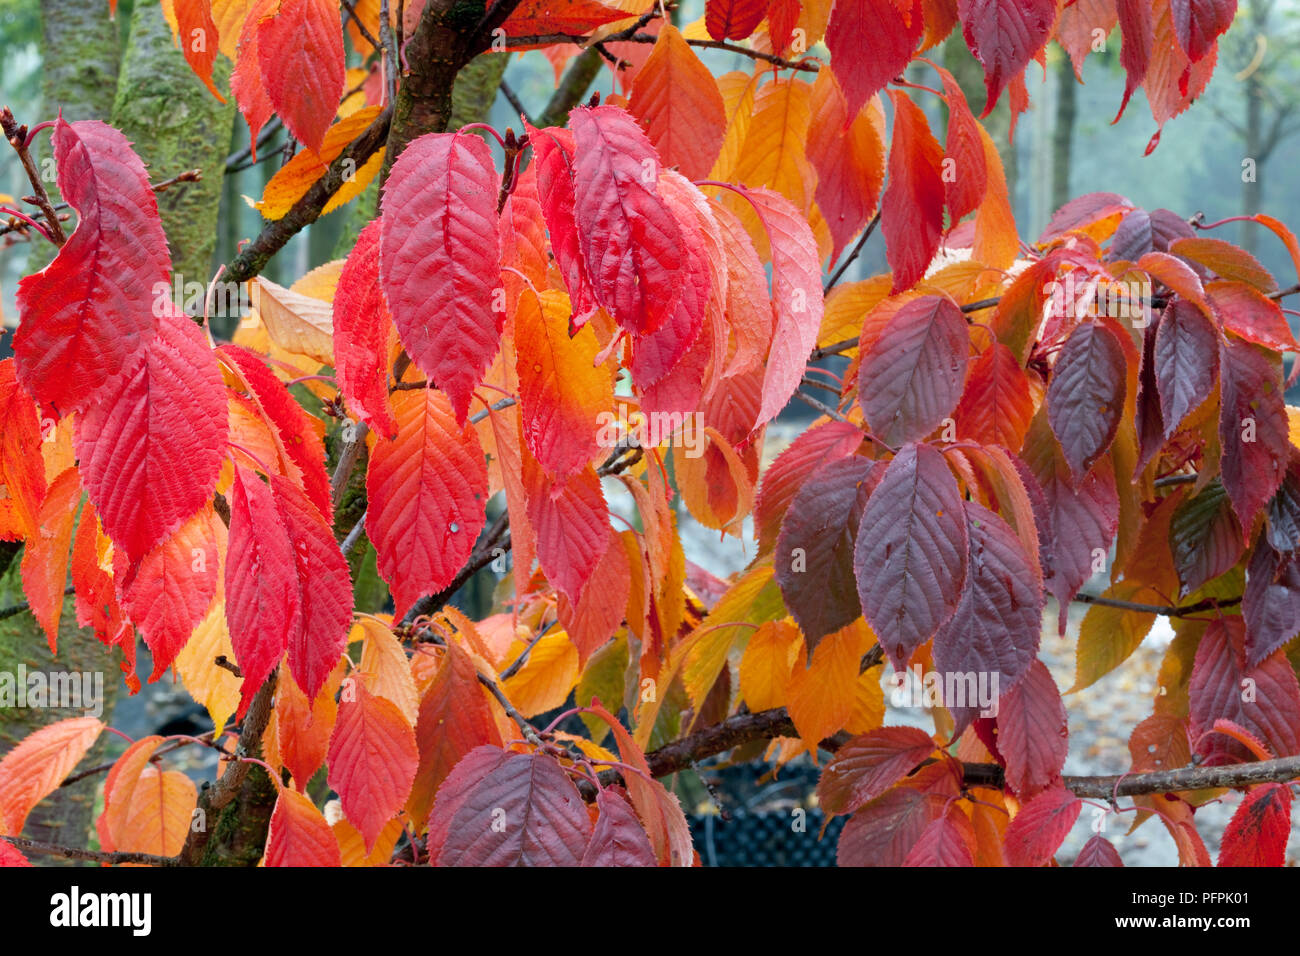 Prunus sargentii 'Rancho' (Sargent's cherry), red leaves Stock Photo